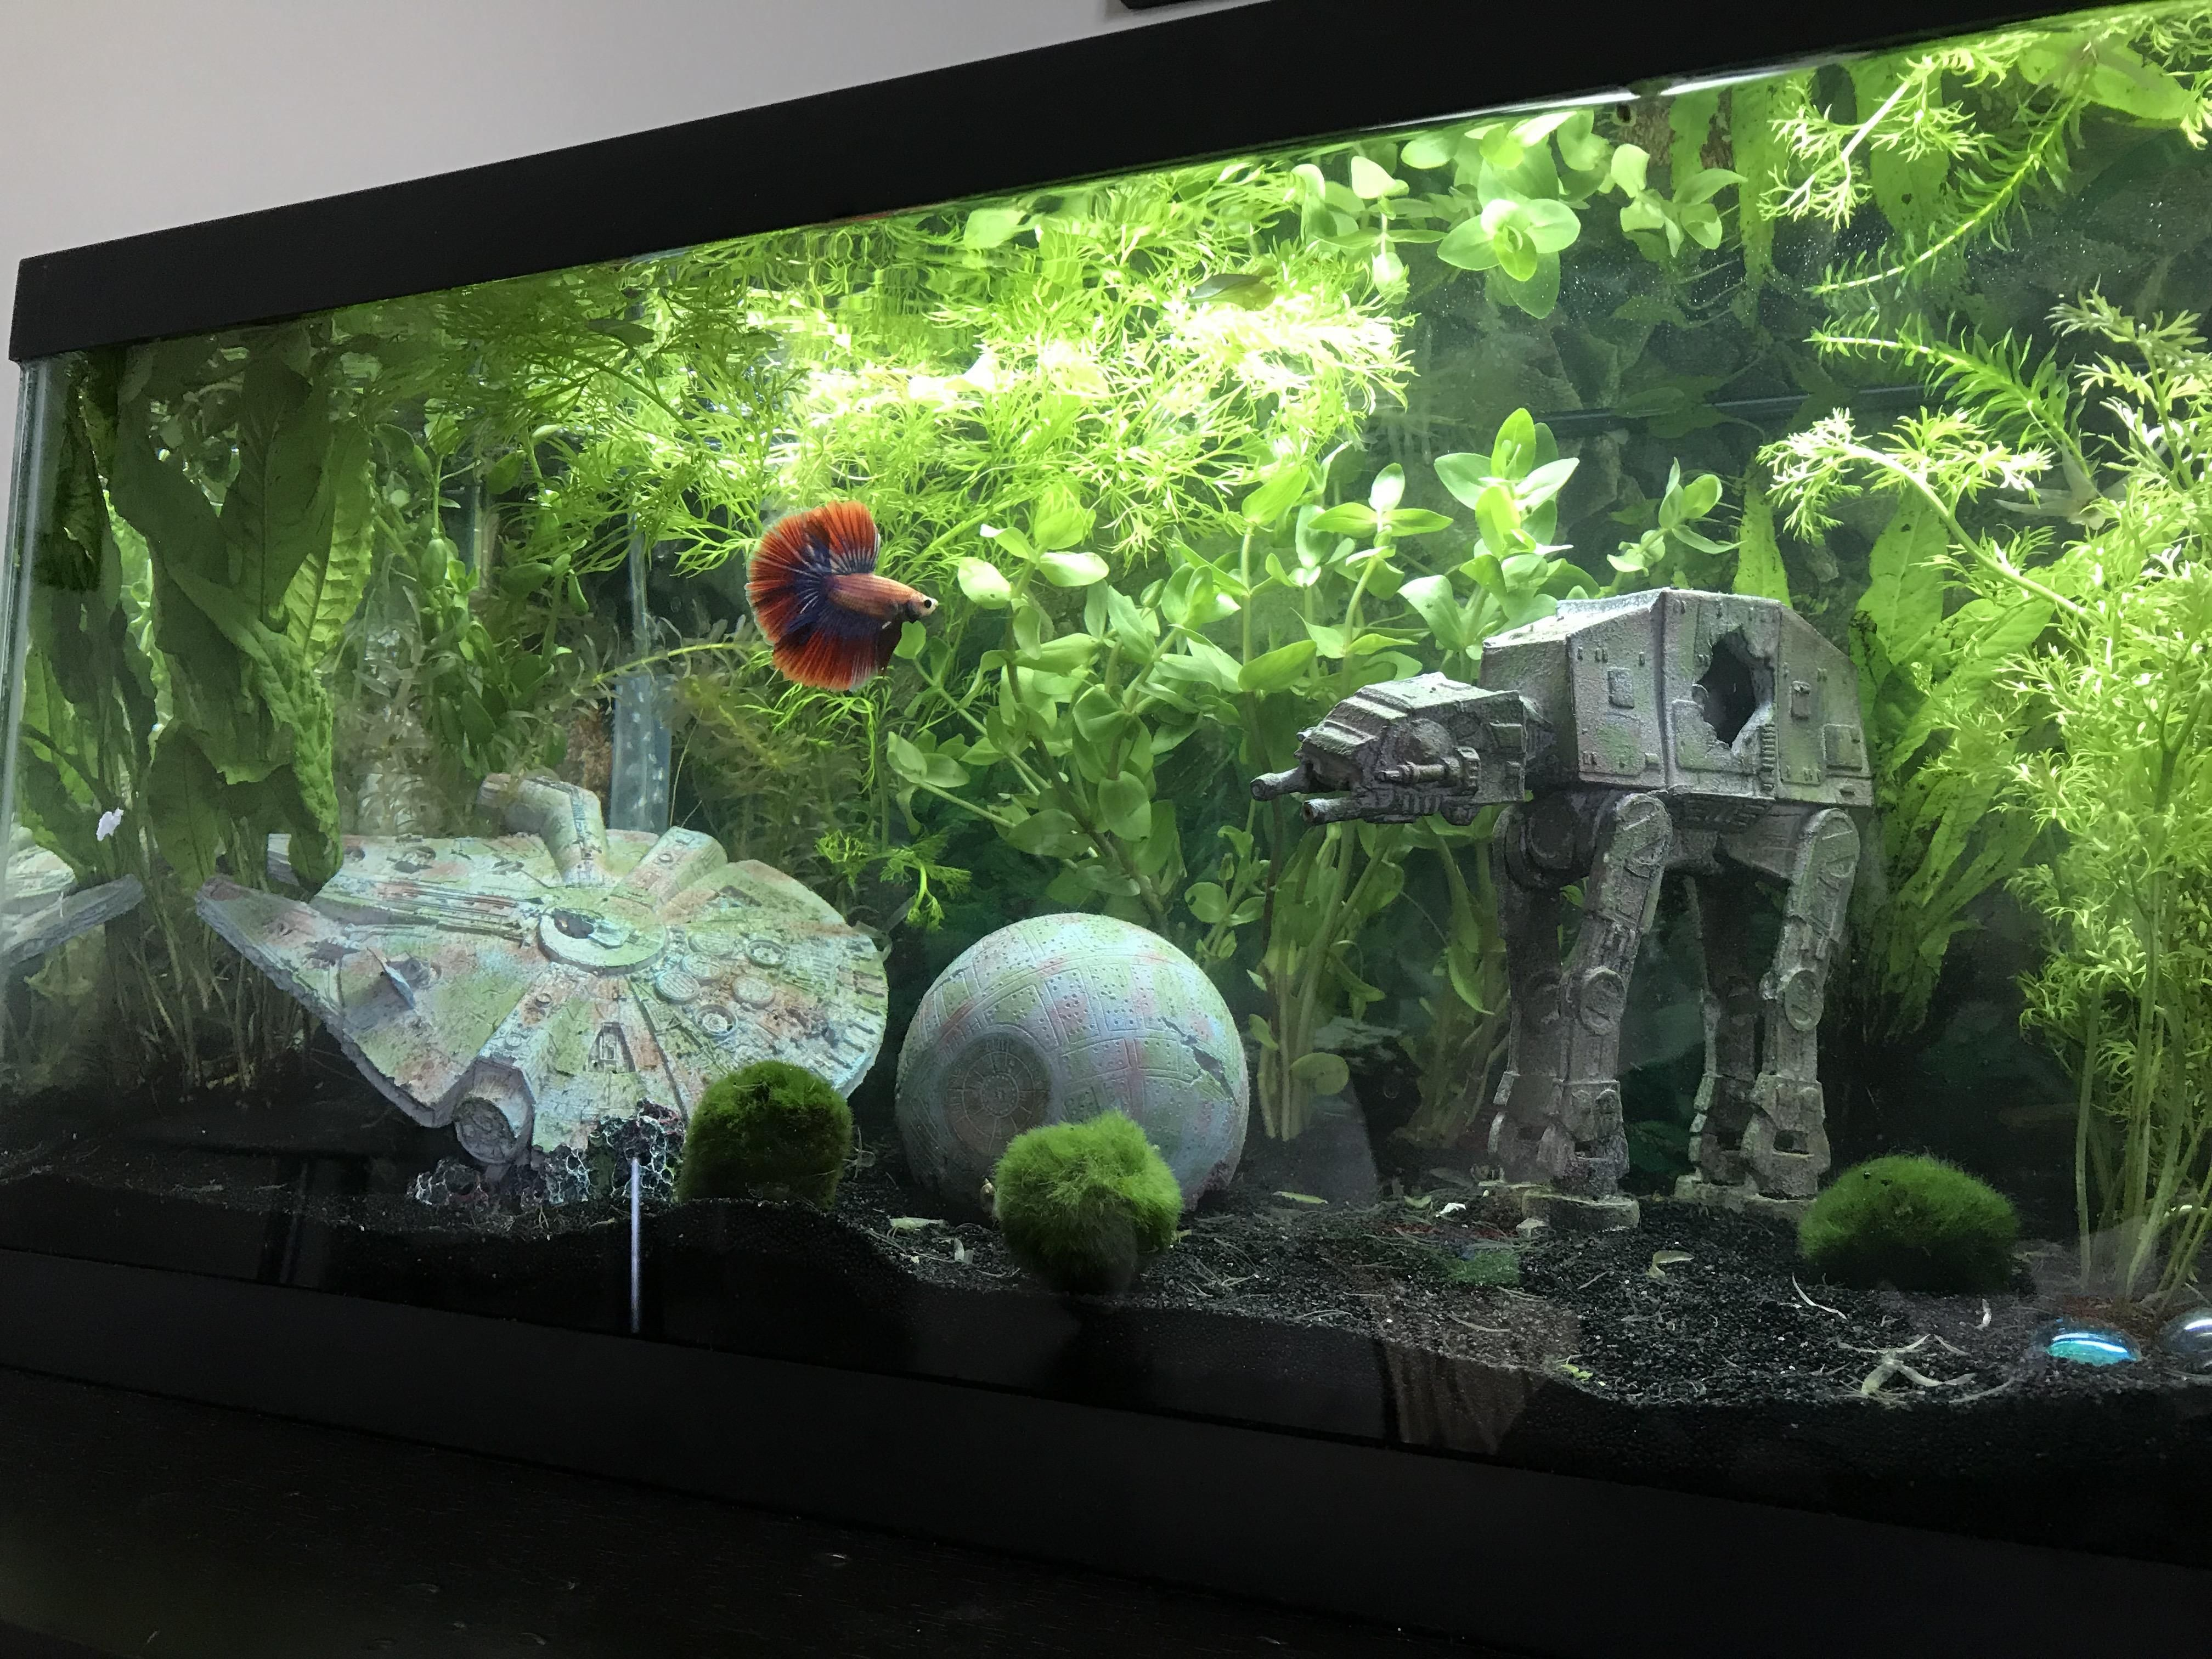 My 20 Gallon Long Star Wars Fish Tank Appearance By My Betta Poe Got The Decor At M Cool Fish Tank Decorations Fish Aquarium Decorations Fish Tank Themes